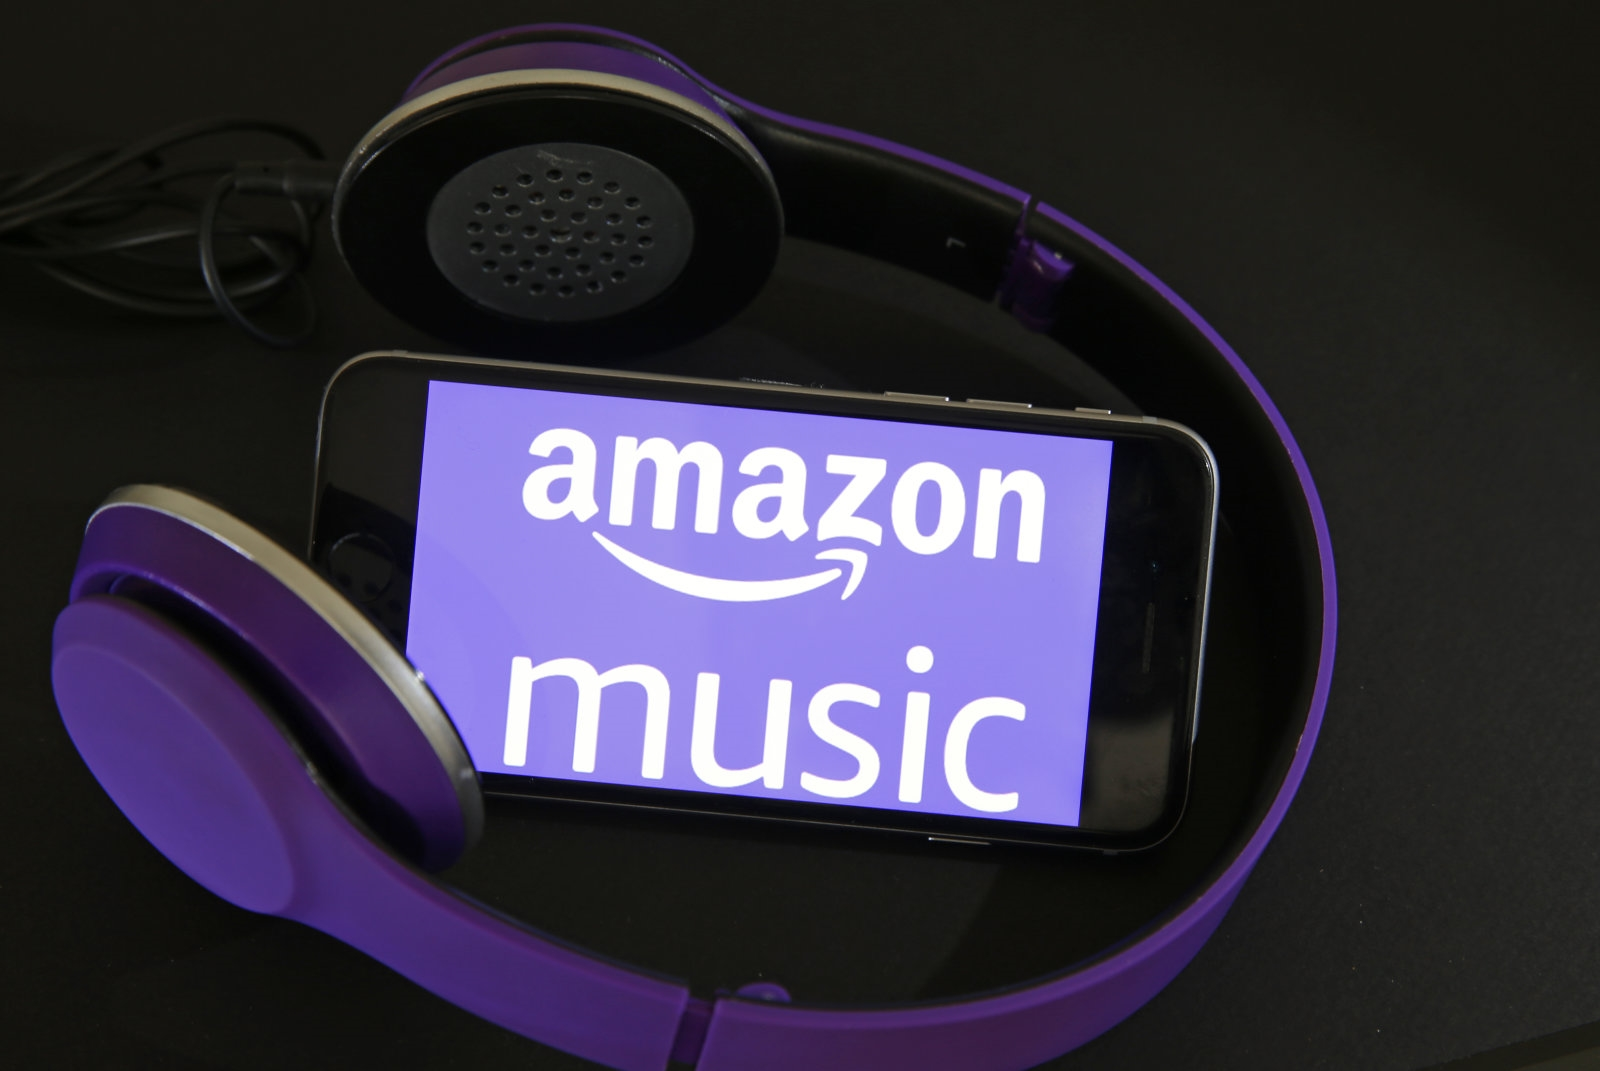 Alexa owners can listen to Amazon Music for free -- with ads | DeviceDaily.com